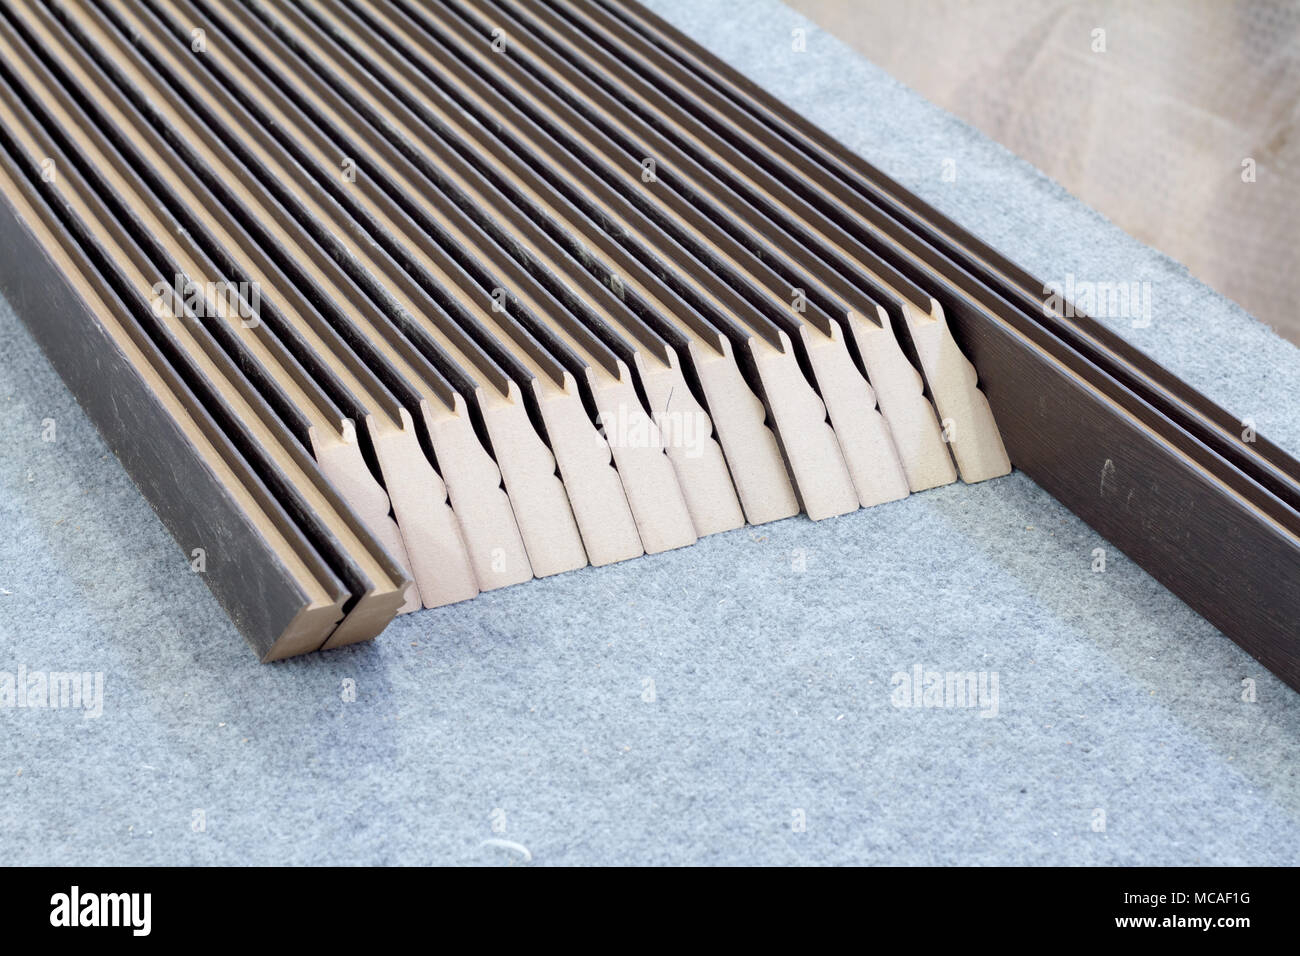 Old Skirting Board Stock Photos & Old Skirting Board Stock Images ...